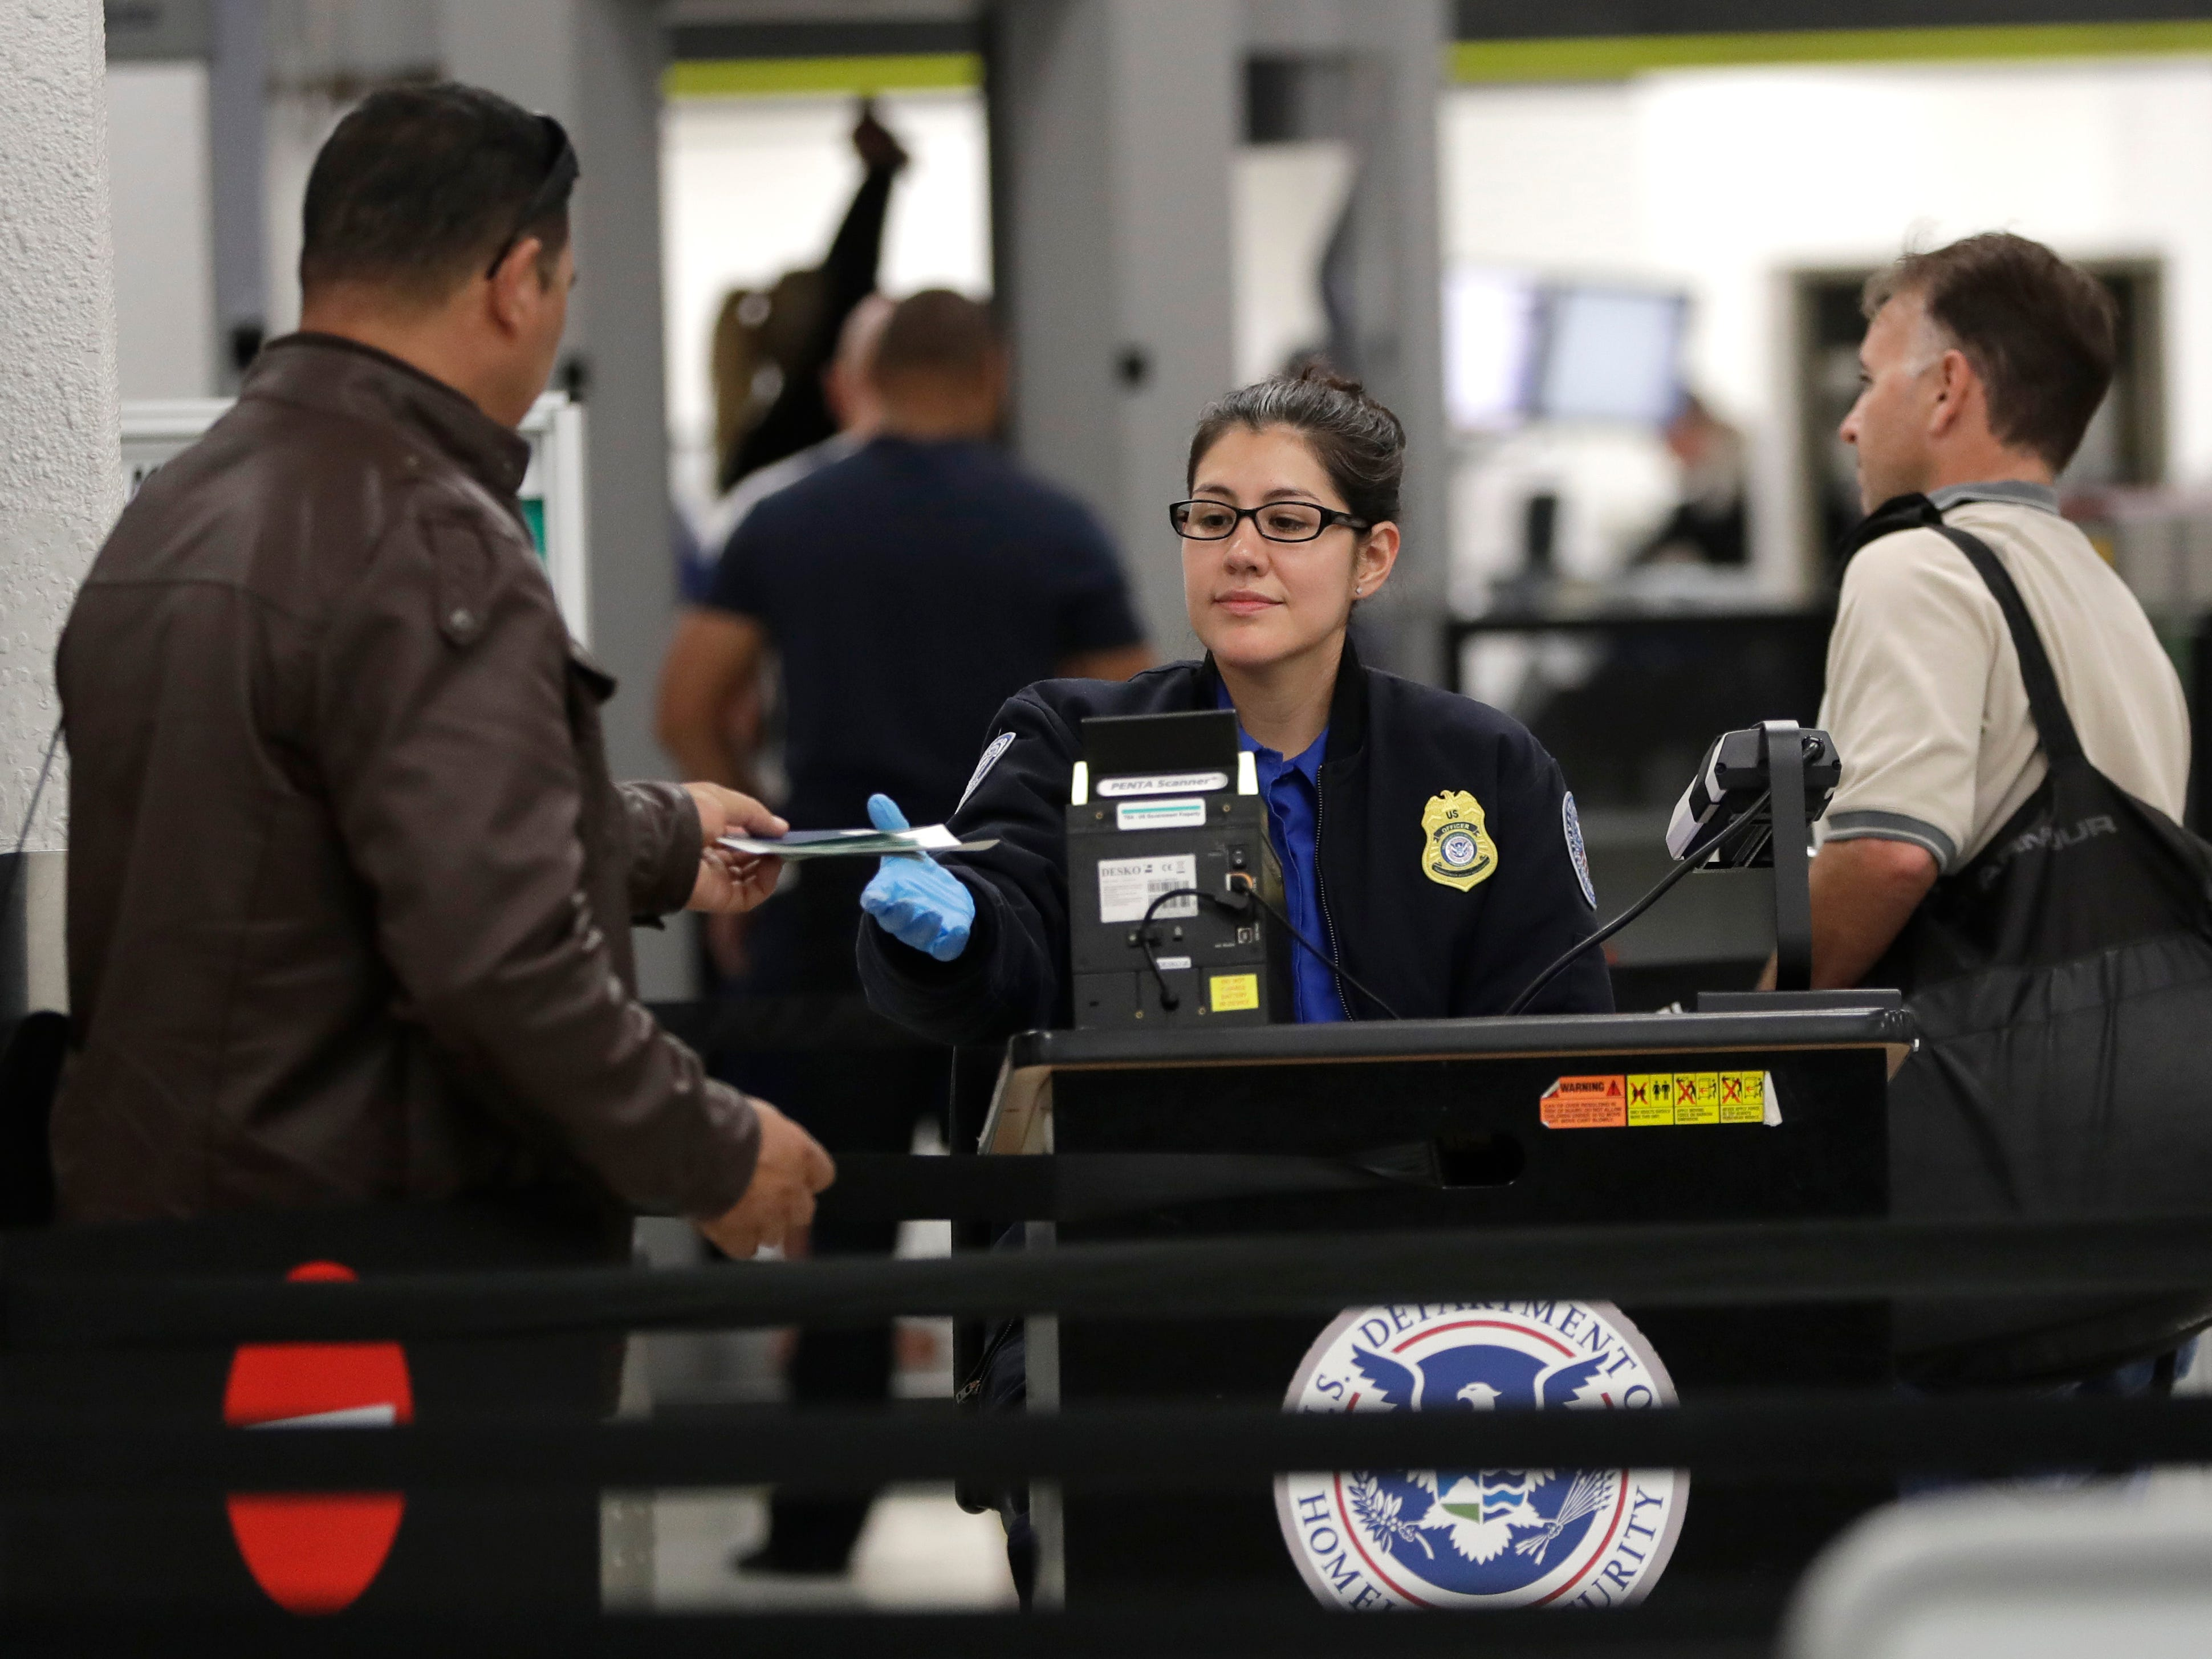 A Transportation Security Administration officer works at a checkpoint at Miami International Airport, Jan. 6, 2019, in Miami. The TSA acknowledged an increase in the number of its employees calling off work during the partial government shutdown.